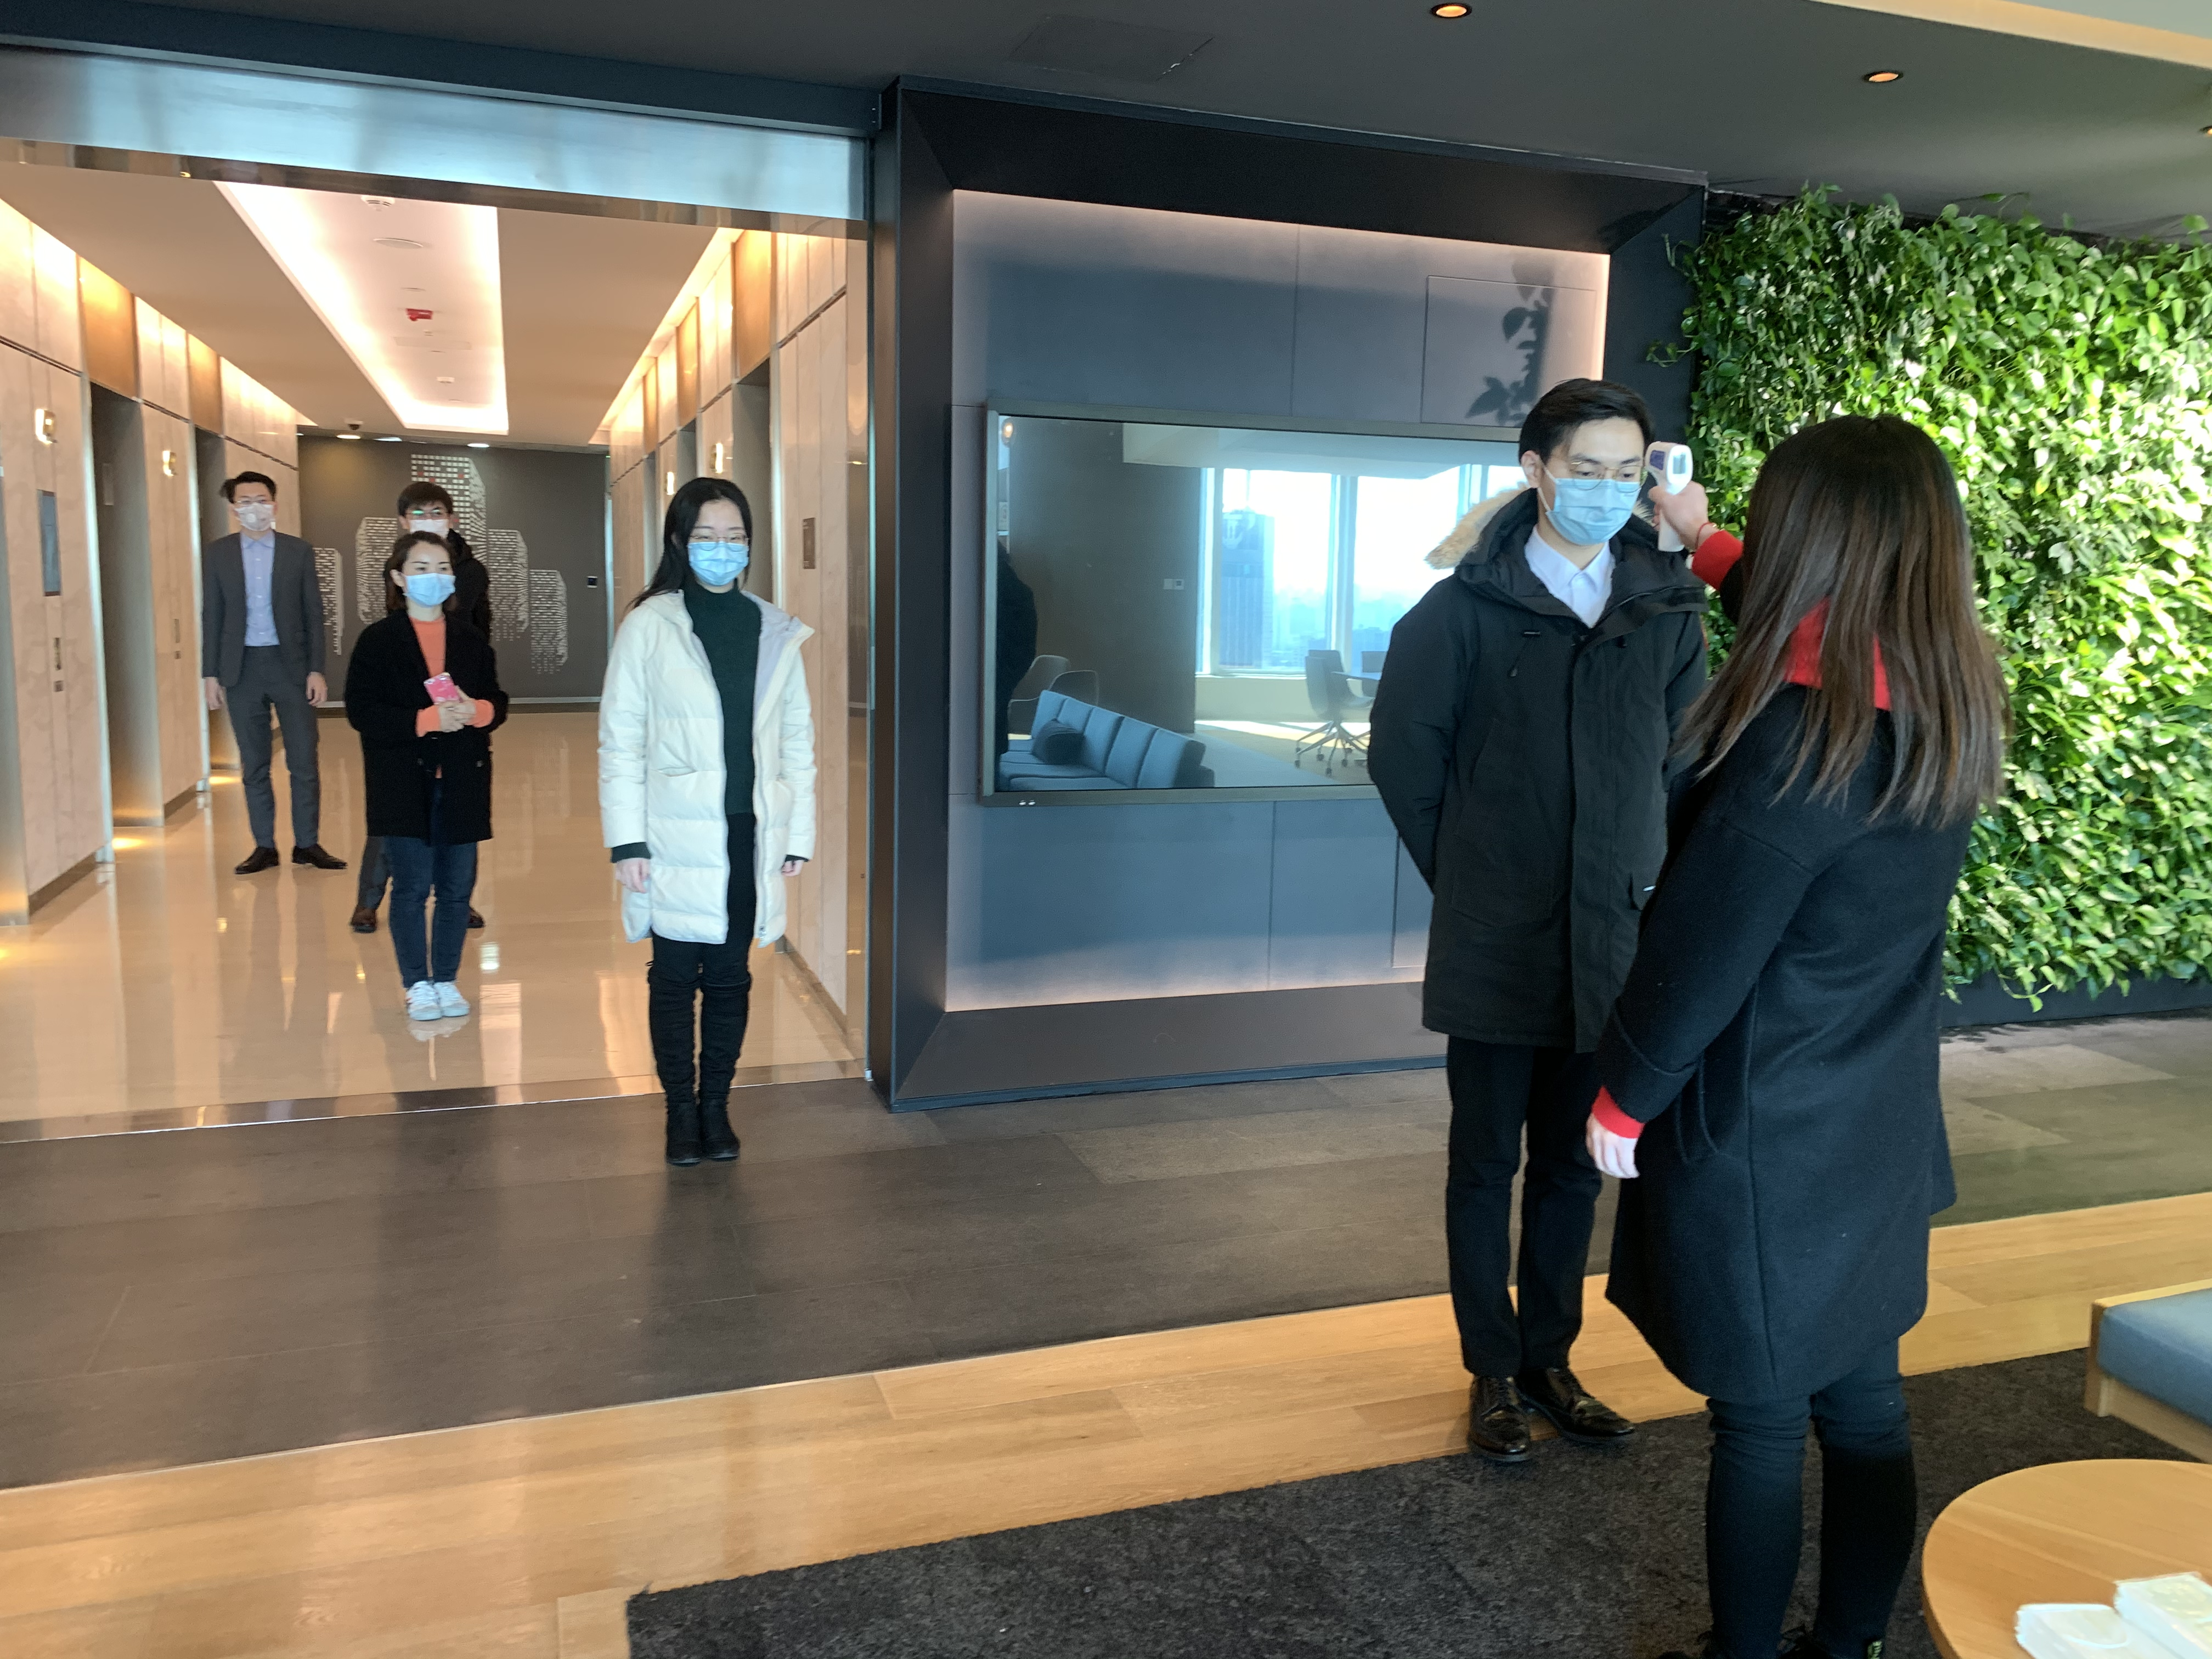 Employees at an office building in China have their temperatures checked. (Cushman & Wakefield)